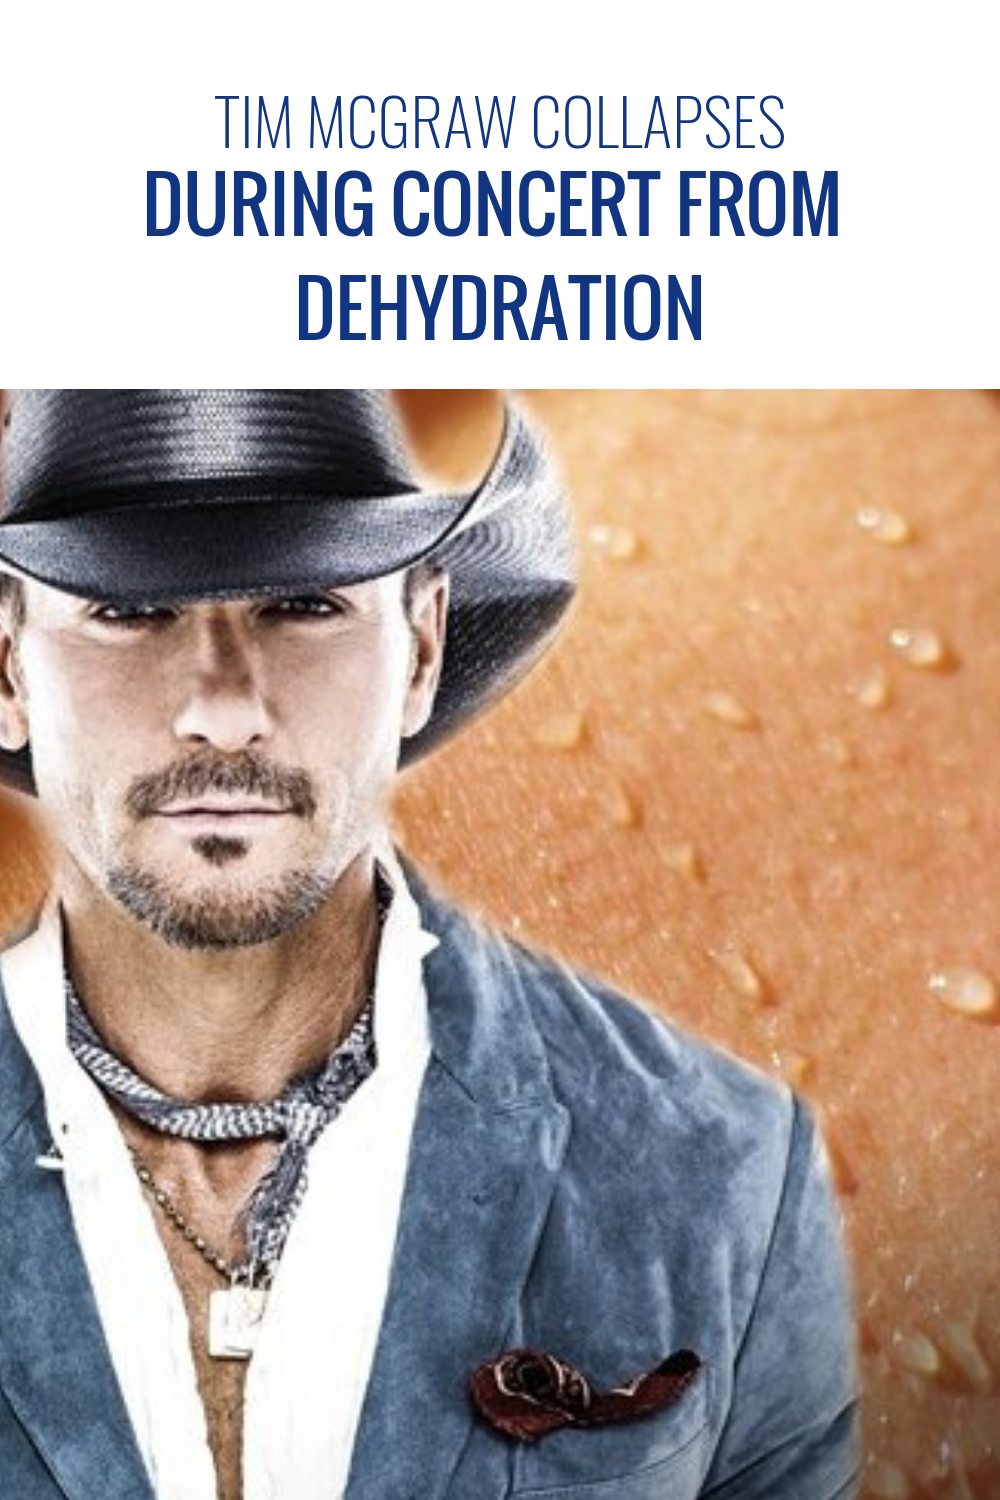 Tim McGraw Collapses During Concert From Dehydration